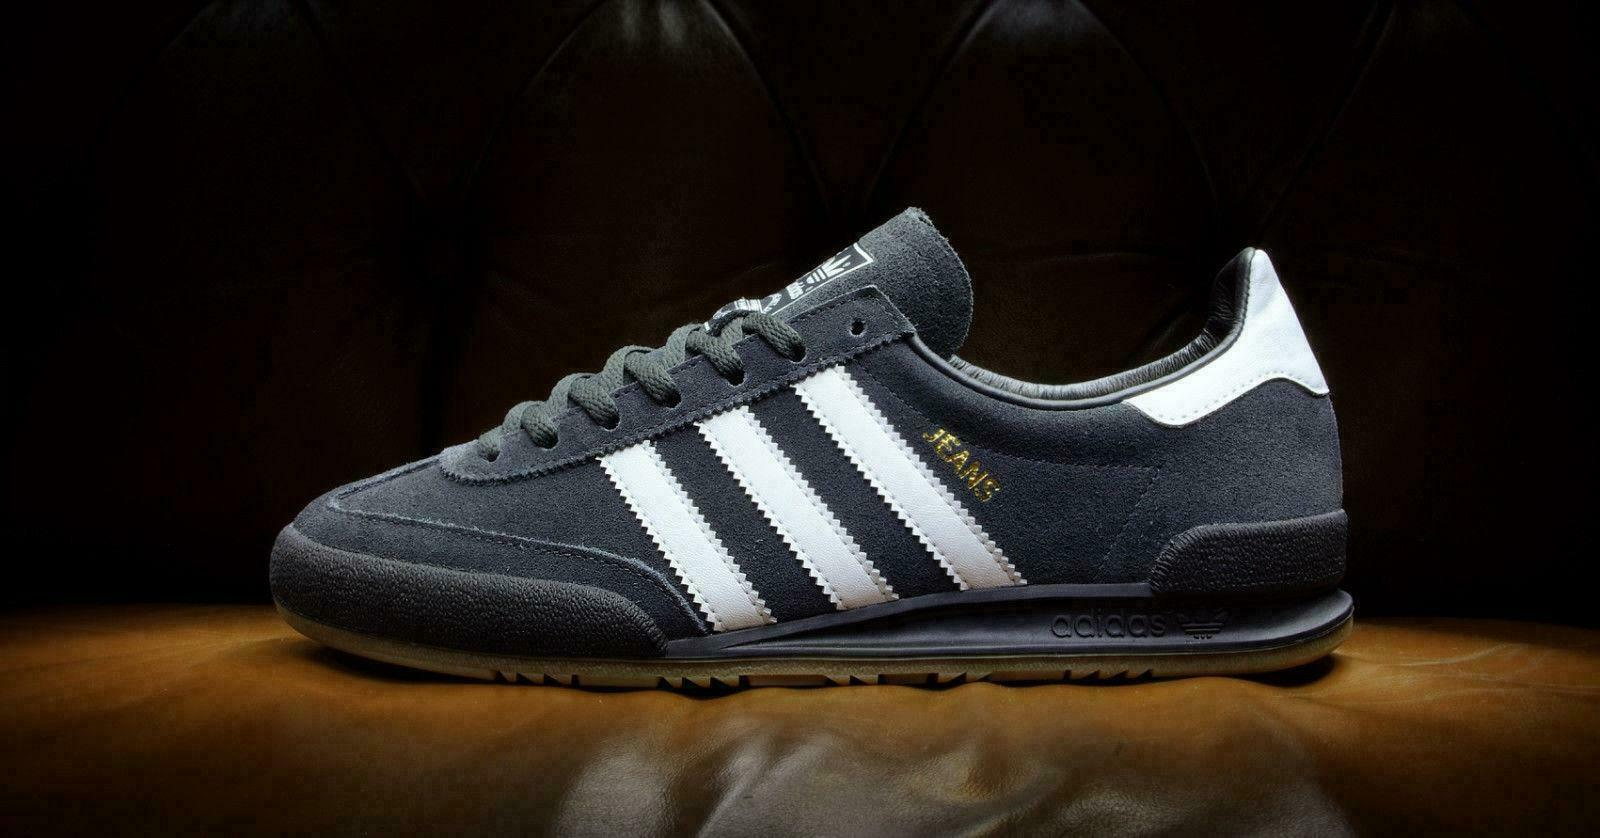 Adidas Originals Jeans Trainers - Adults + Junior sizes Available - CQ2768